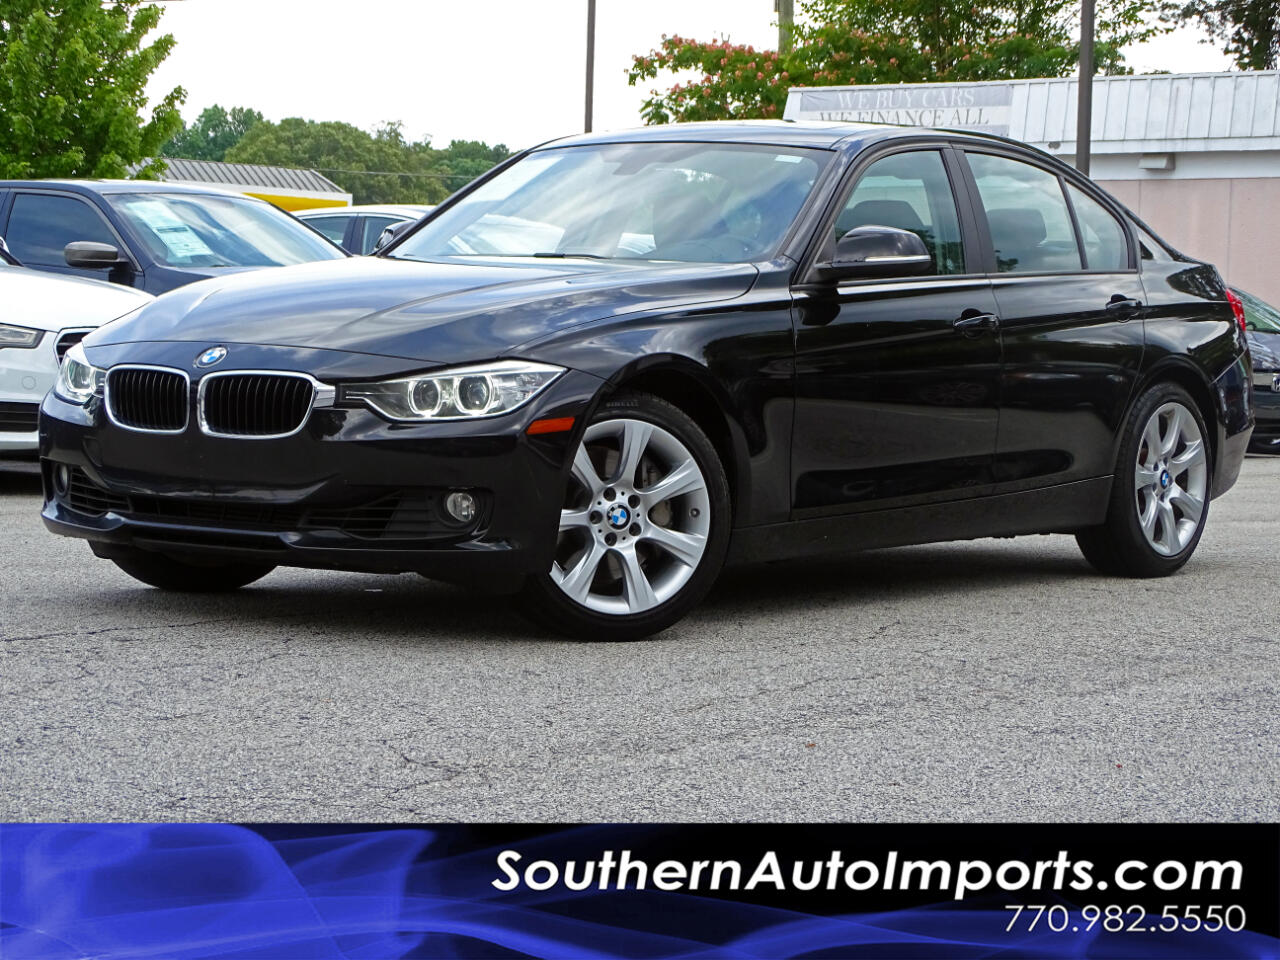 2013 BMW 3 Series 335i Bluetooth Sunroof Leather Seats